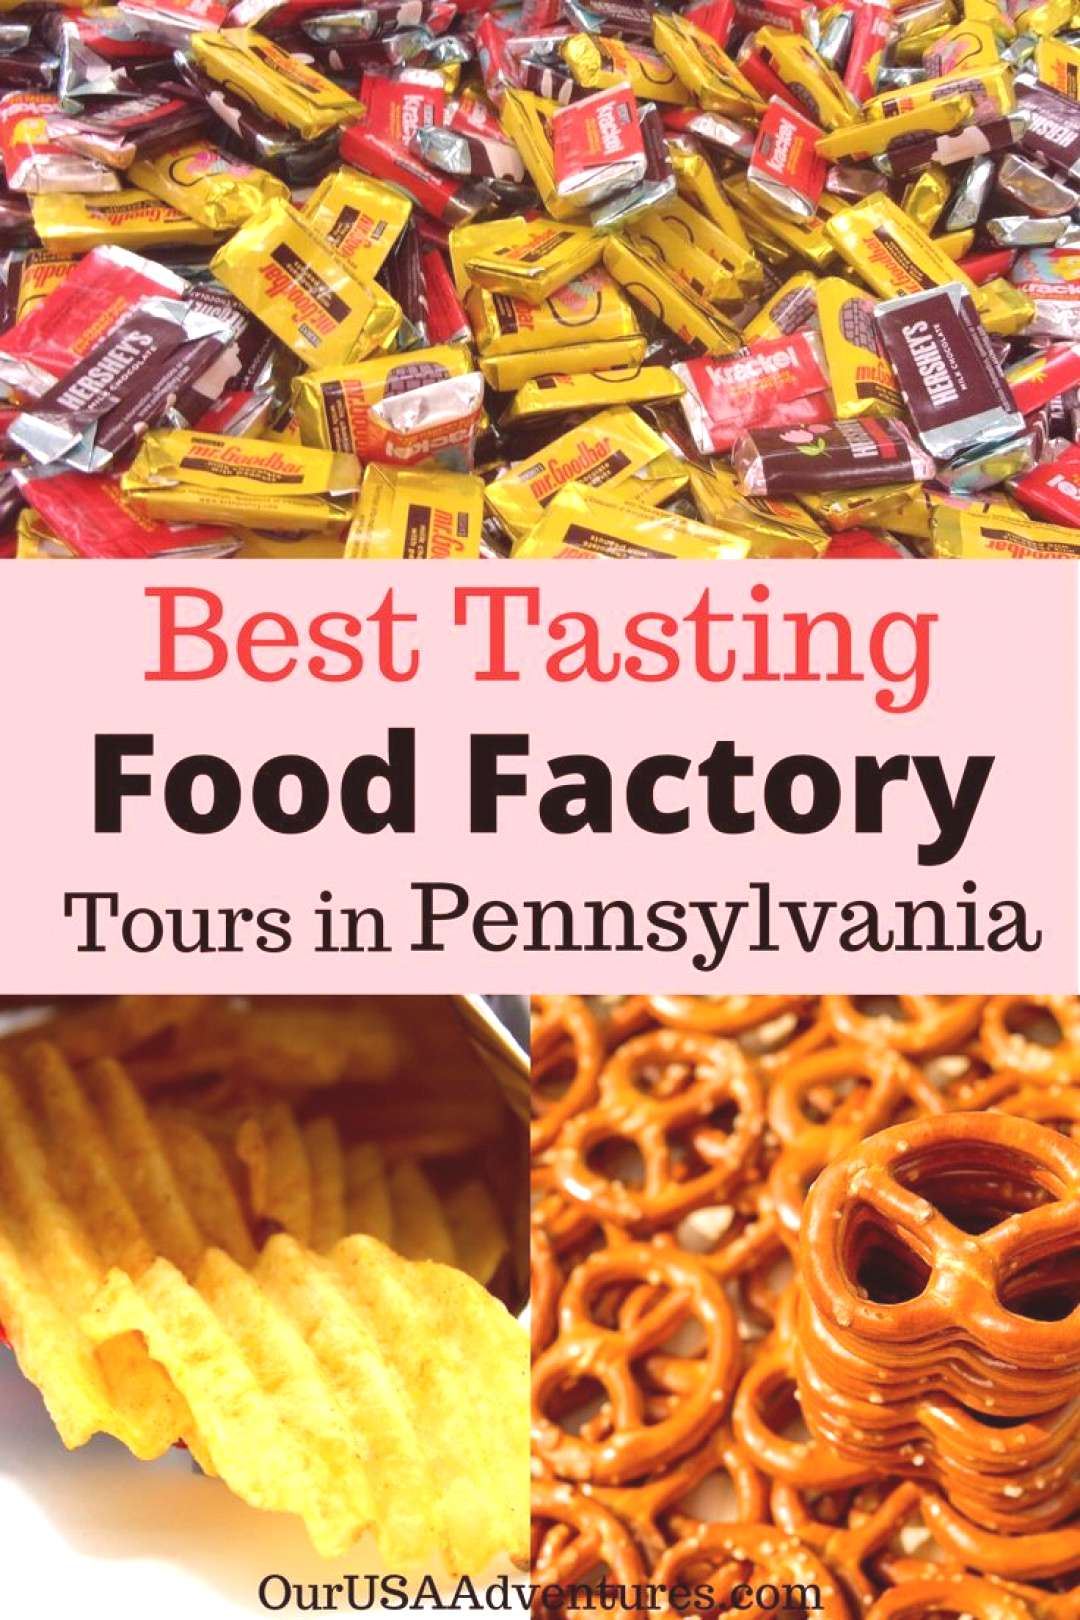 Best Tasting Food Factory Tours in Pennsylvania - Pennsylvania is home to many Best Tasting Food f